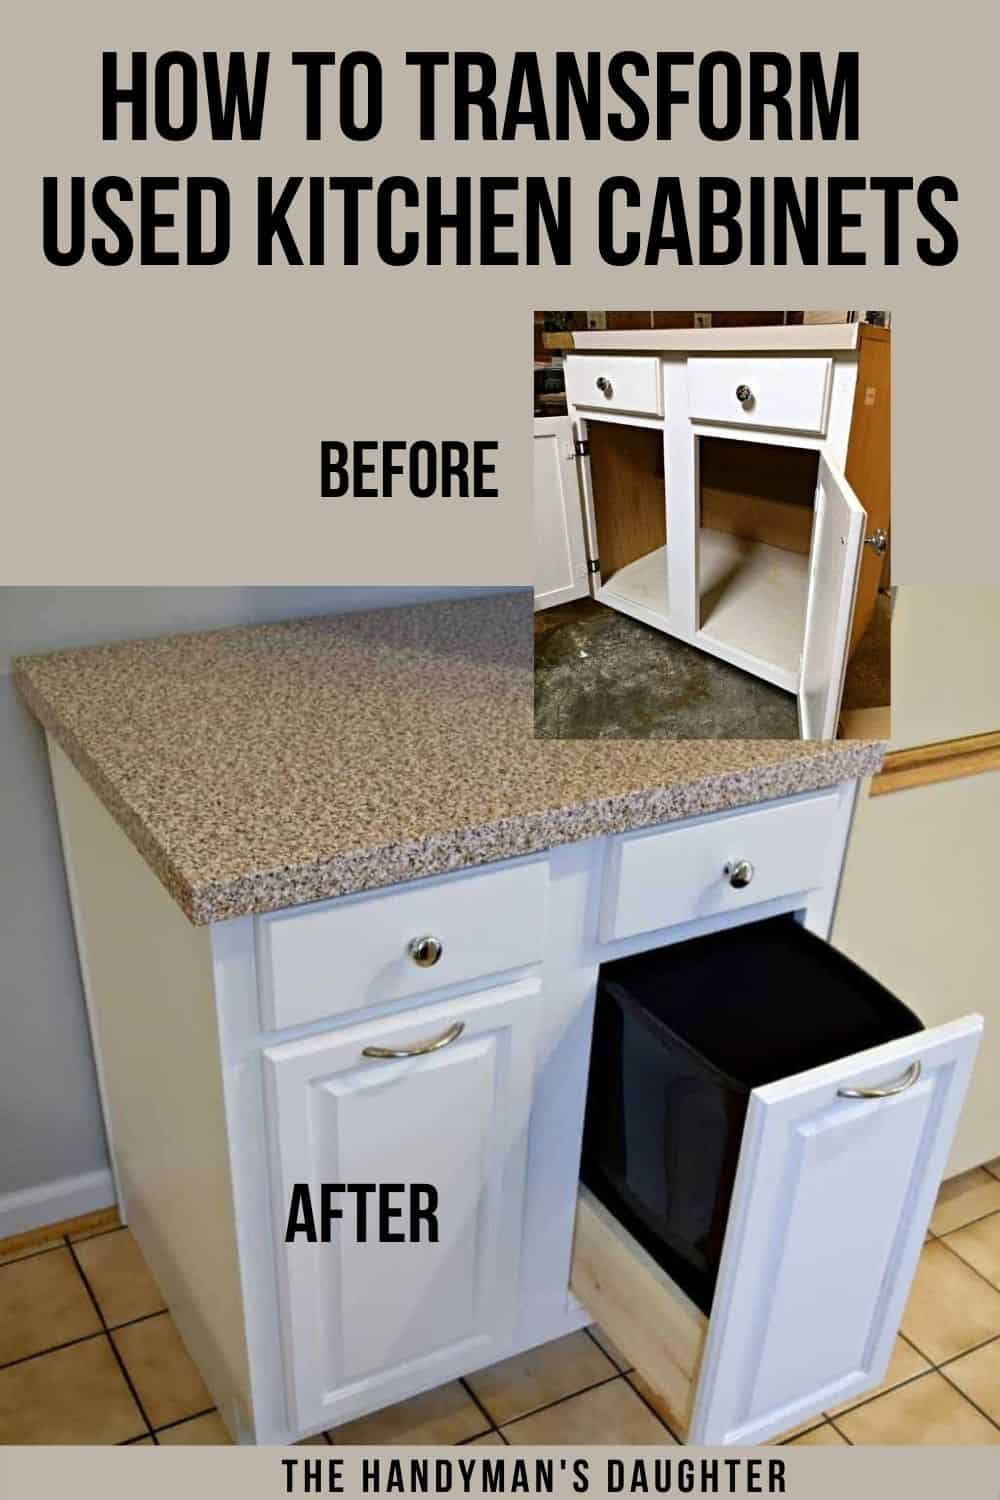 image before and after of used kitchen cabinet with text overlay